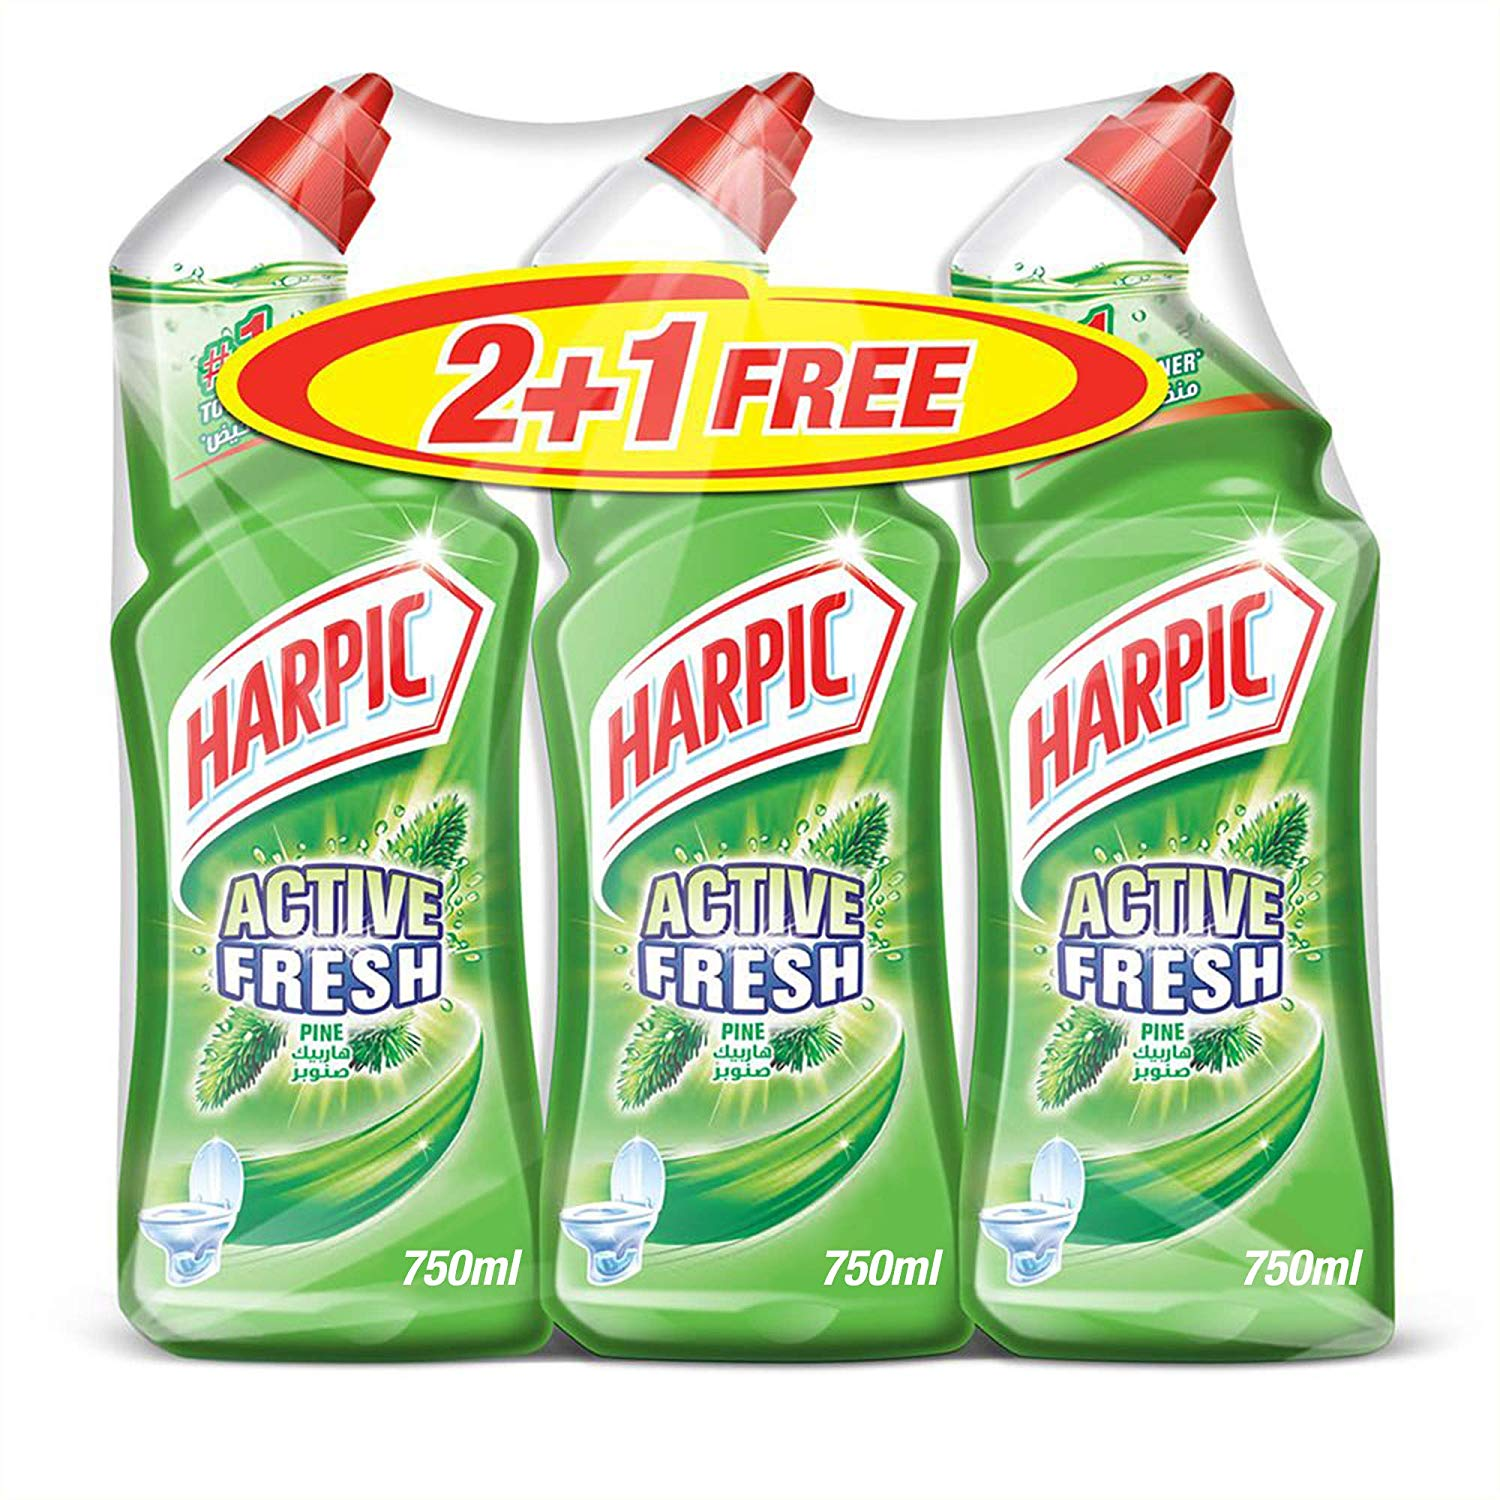 Harpic Active Fresh Toilet Cleaner Pine - 750ml (pkt/3pcs)